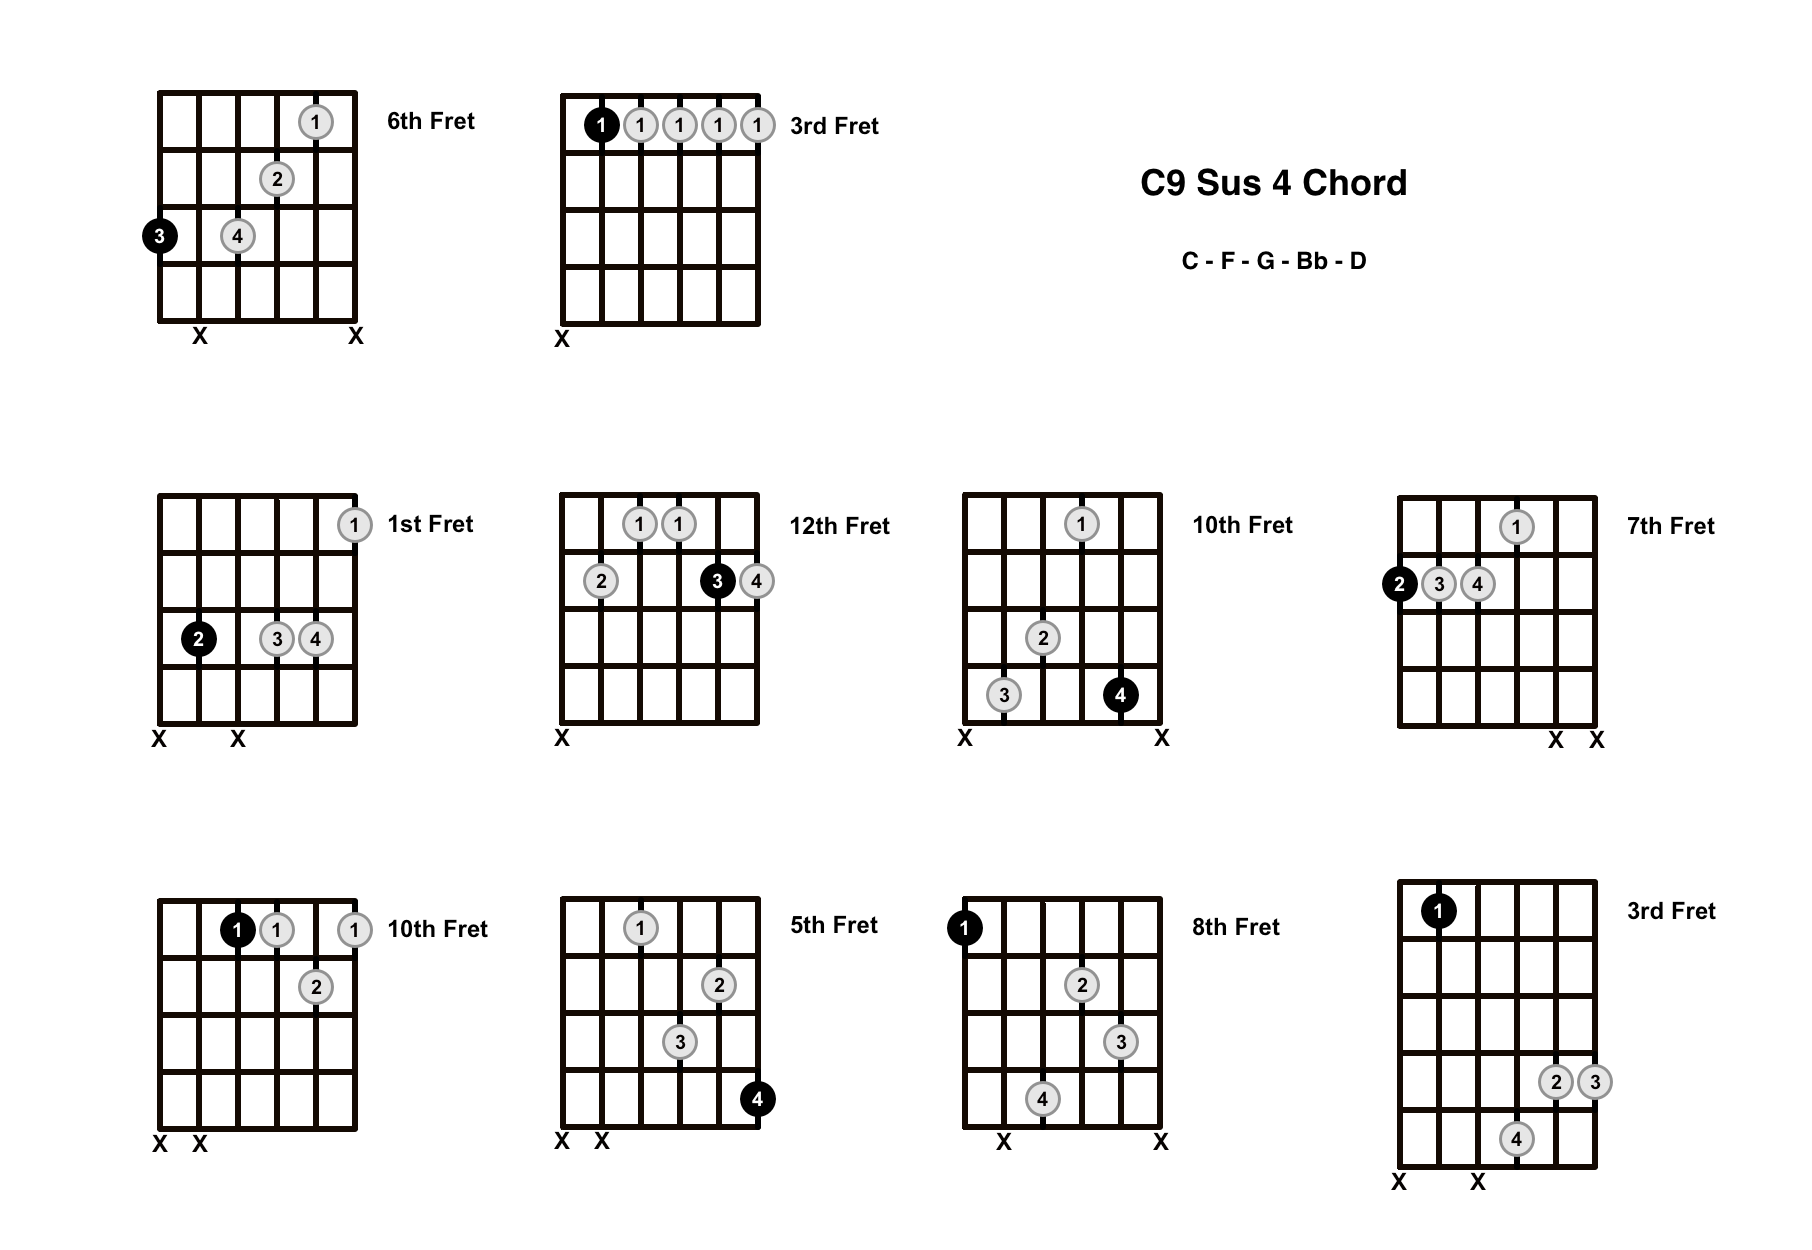 C9 Sus 4 Chord On The Guitar (C9 Suspended 4, Bb/C) – Diagrams, Finger Positions and Theory